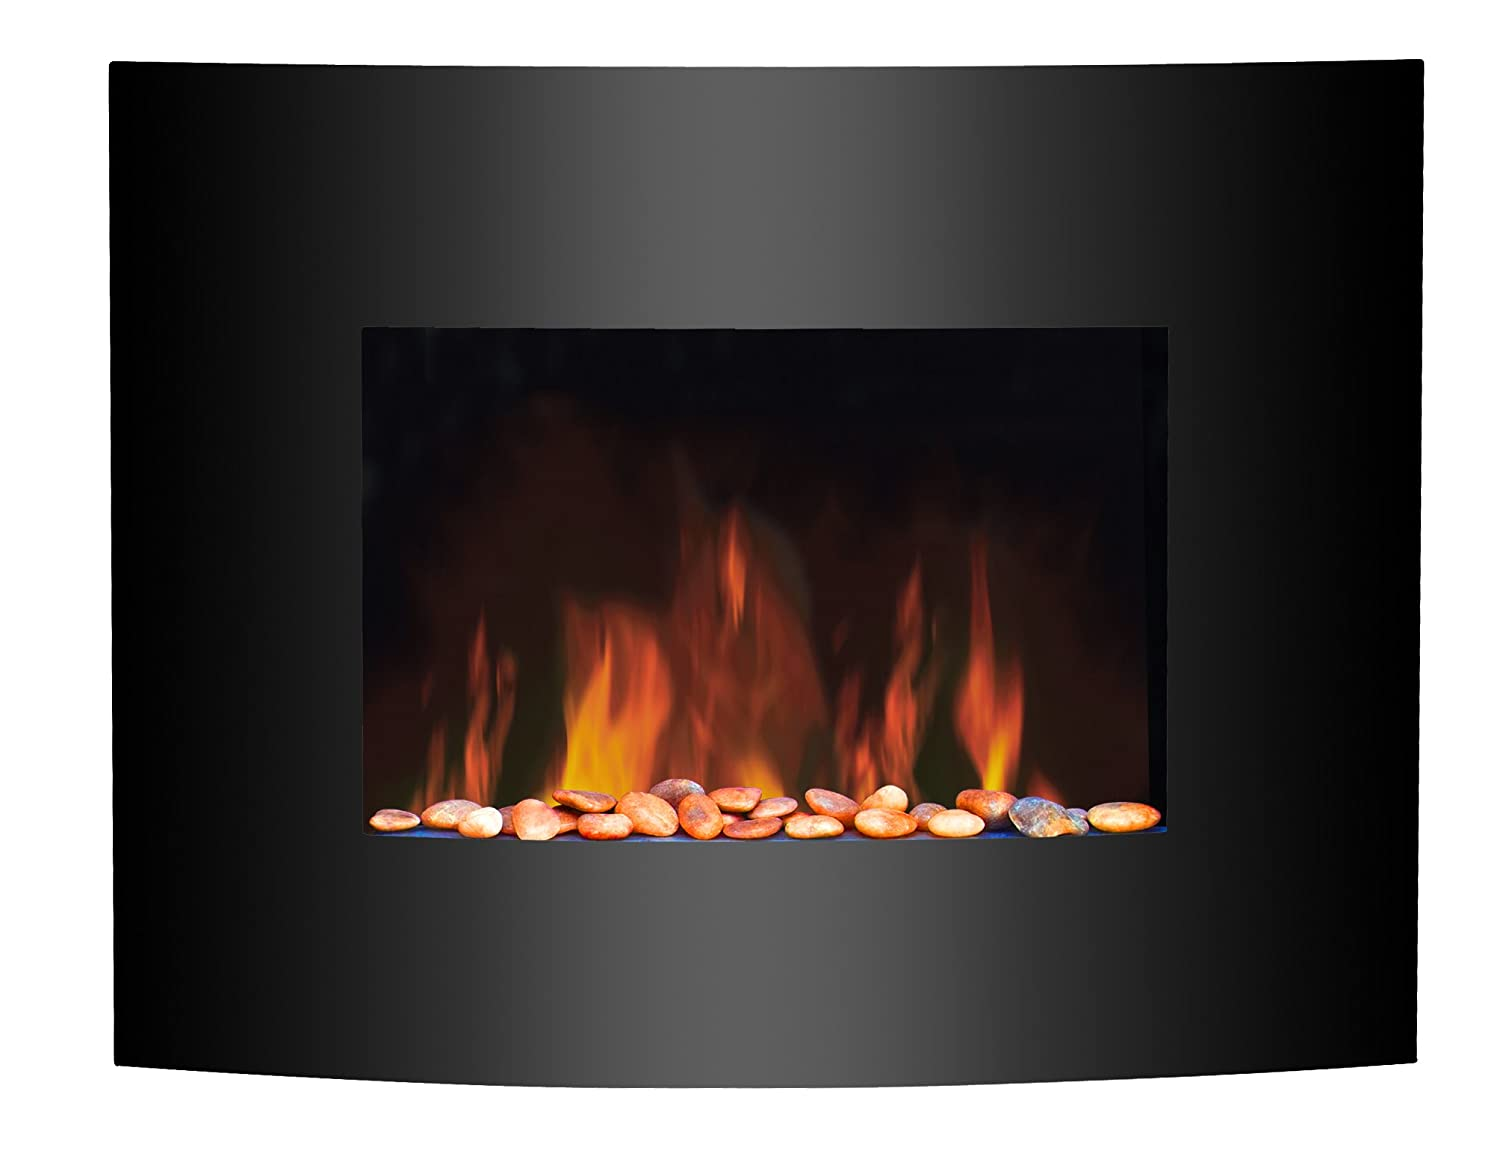 FoxHunter Wall Mounted Electric Fire Fireplace Plasma with Black Curved  Glass Screen Heater Flame Effect 1 8kW MAX Remote Control New   Amazon co uk  Kitchen  FoxHunter Wall Mounted Electric Fire Fireplace Plasma with Black  . Plasma Fireplace. Home Design Ideas